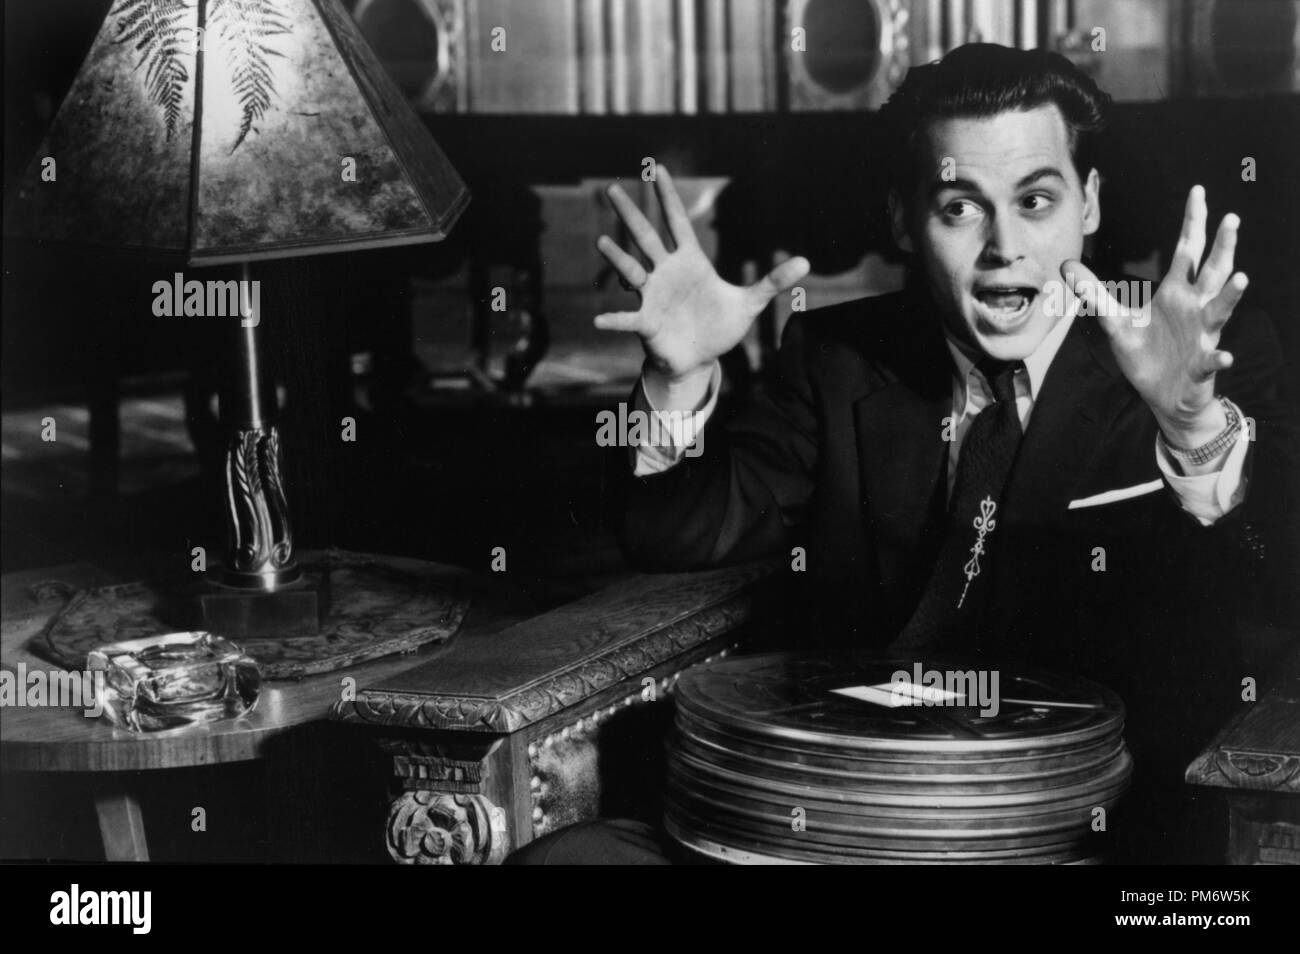 Film Still from 'Ed Wood' Johnny Depp © 1994 Touchstone Photo Credit: Suzanne Tenner - Stock Image